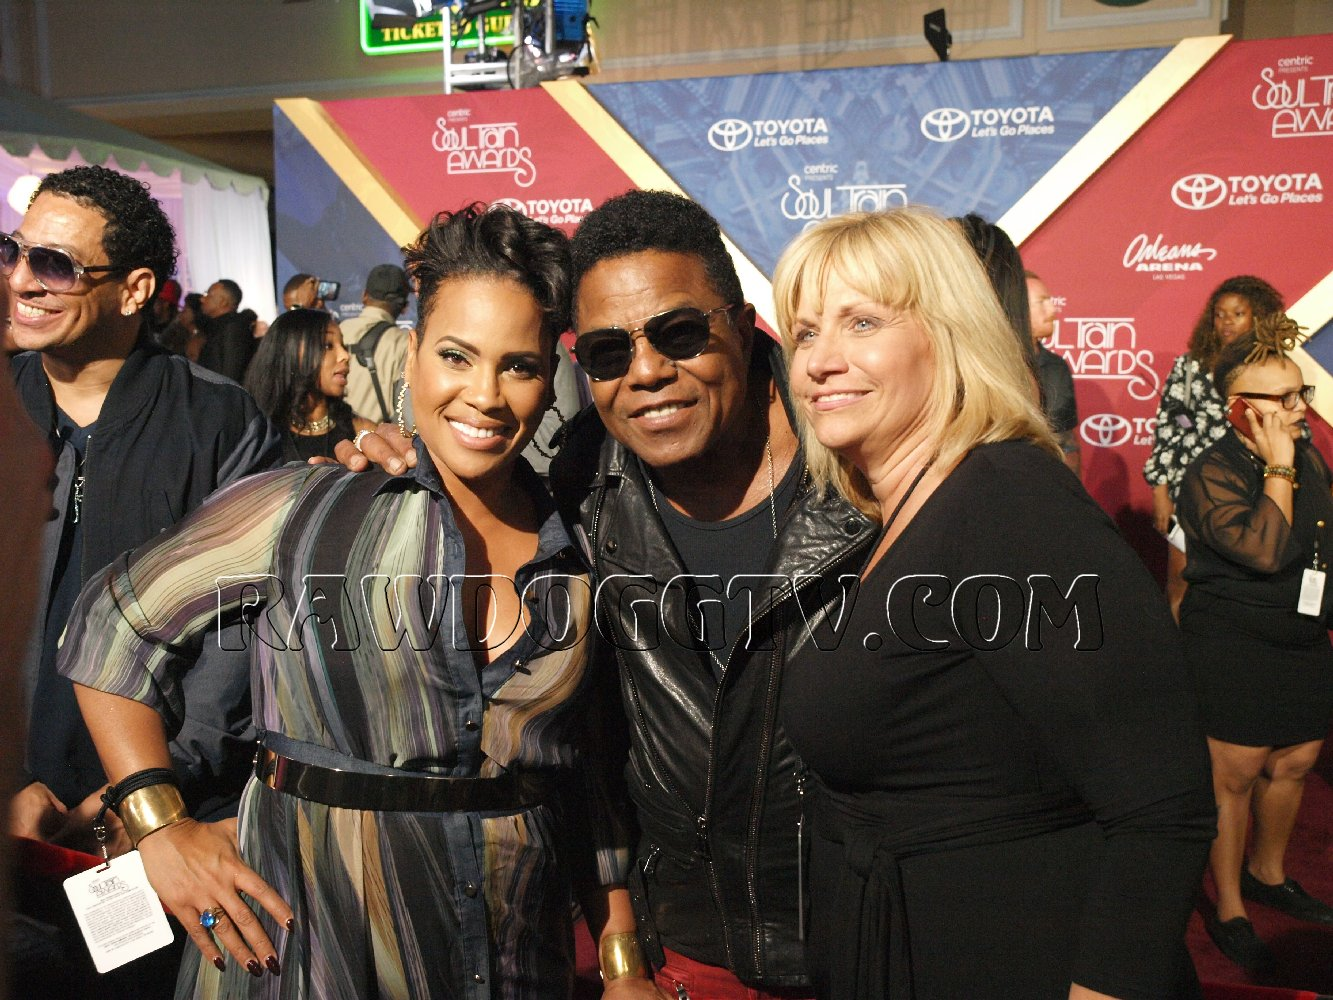 soul-train-music-awards-2016-photos-air-date-nov-27th-bet-centric-pr-mobilewire-305-490-2182-21